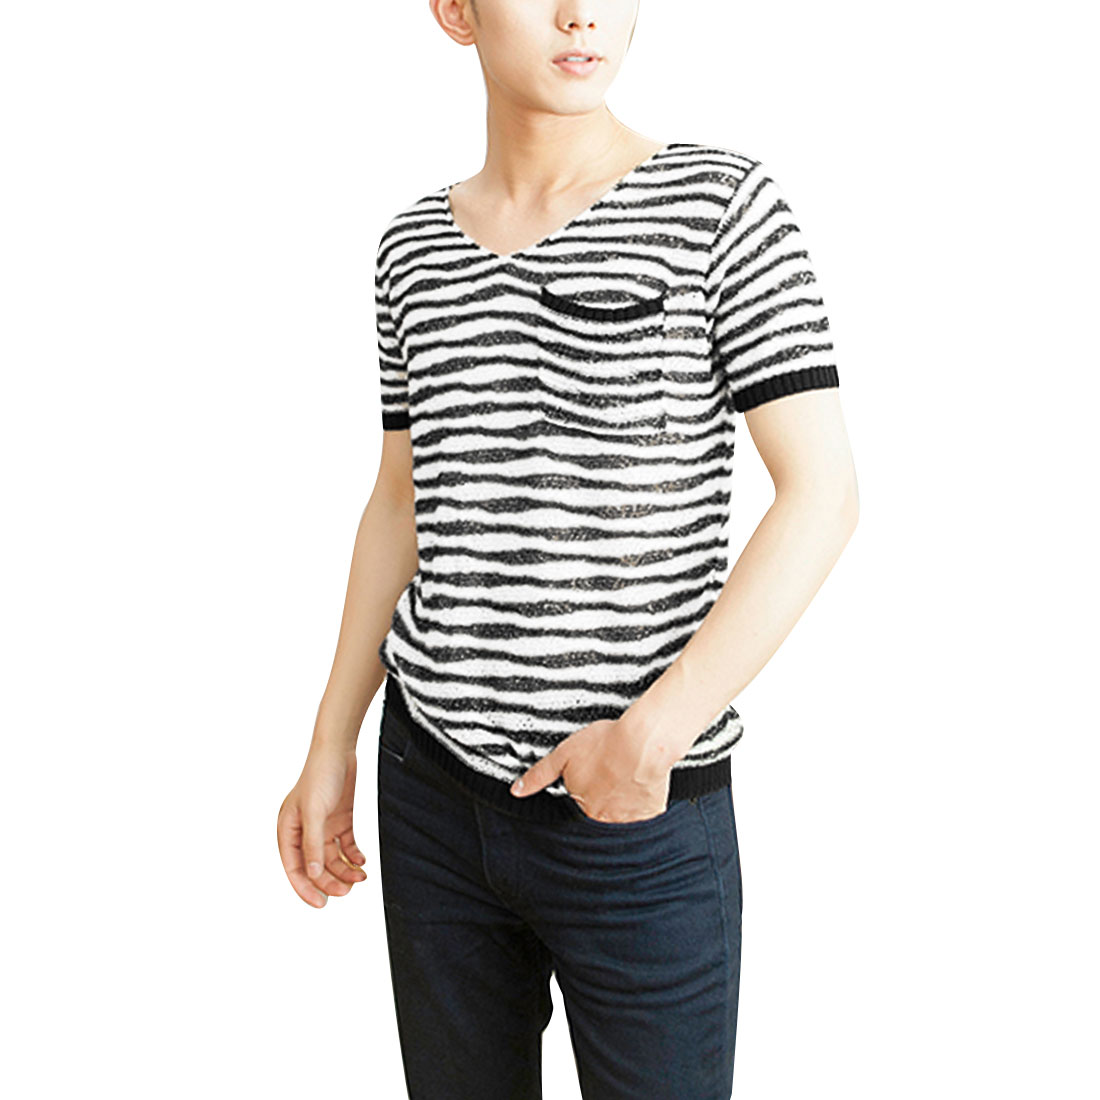 Mens Chic V Neck Short Sleeve Stripes Design Black Beige Knitted Top Shirt S